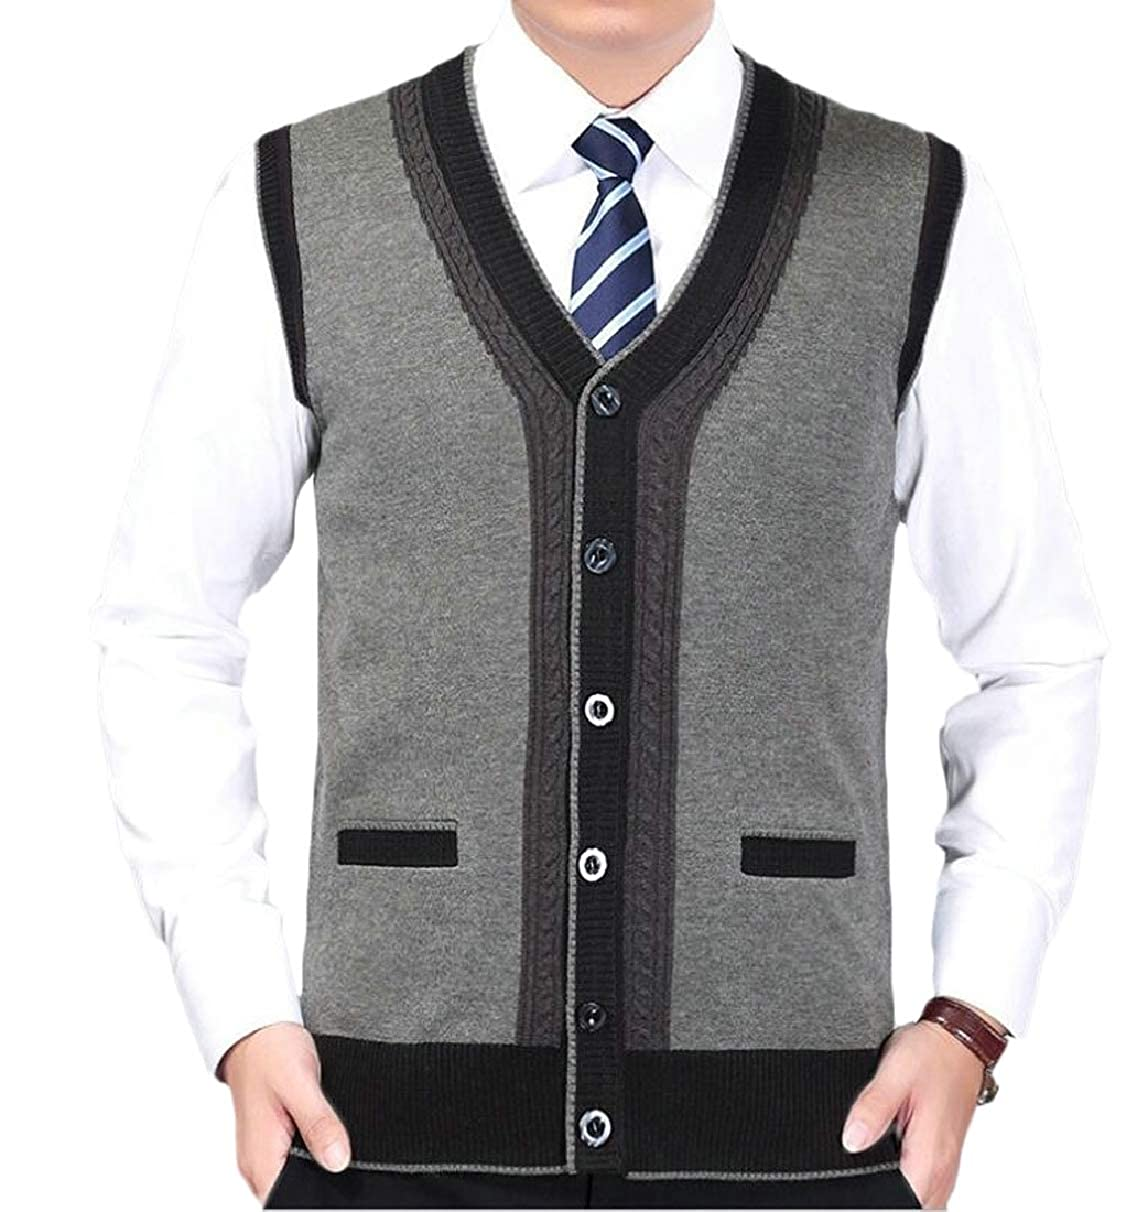 ZXFHZS Mens Fashion Thicken Single Breasted V-Neck Sleeveless Knitted Vest